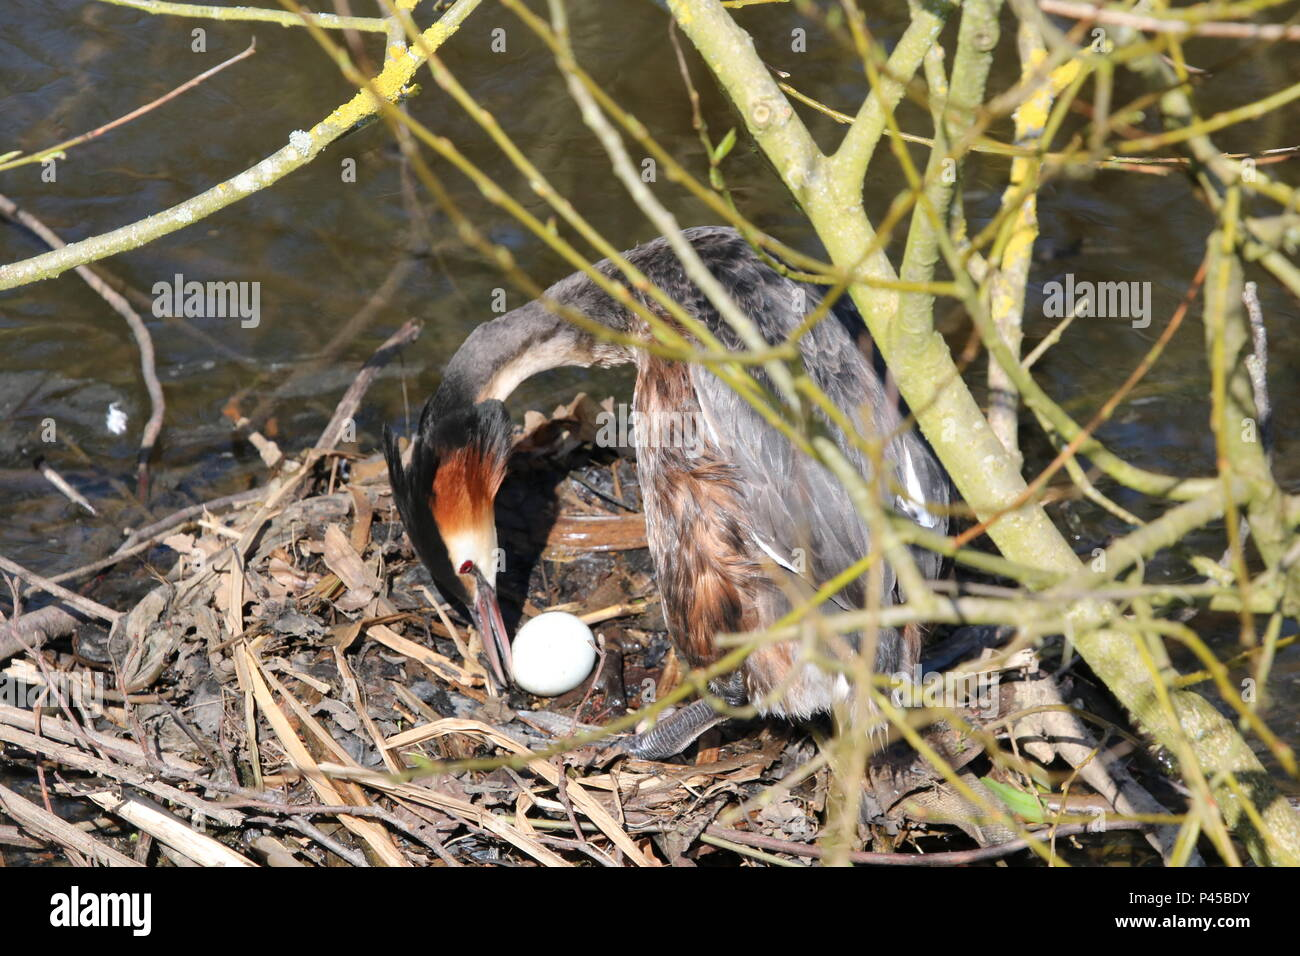 Great Crested Grebe (Podiceps cristatus), on nest with egg North West England, UK - Stock Image